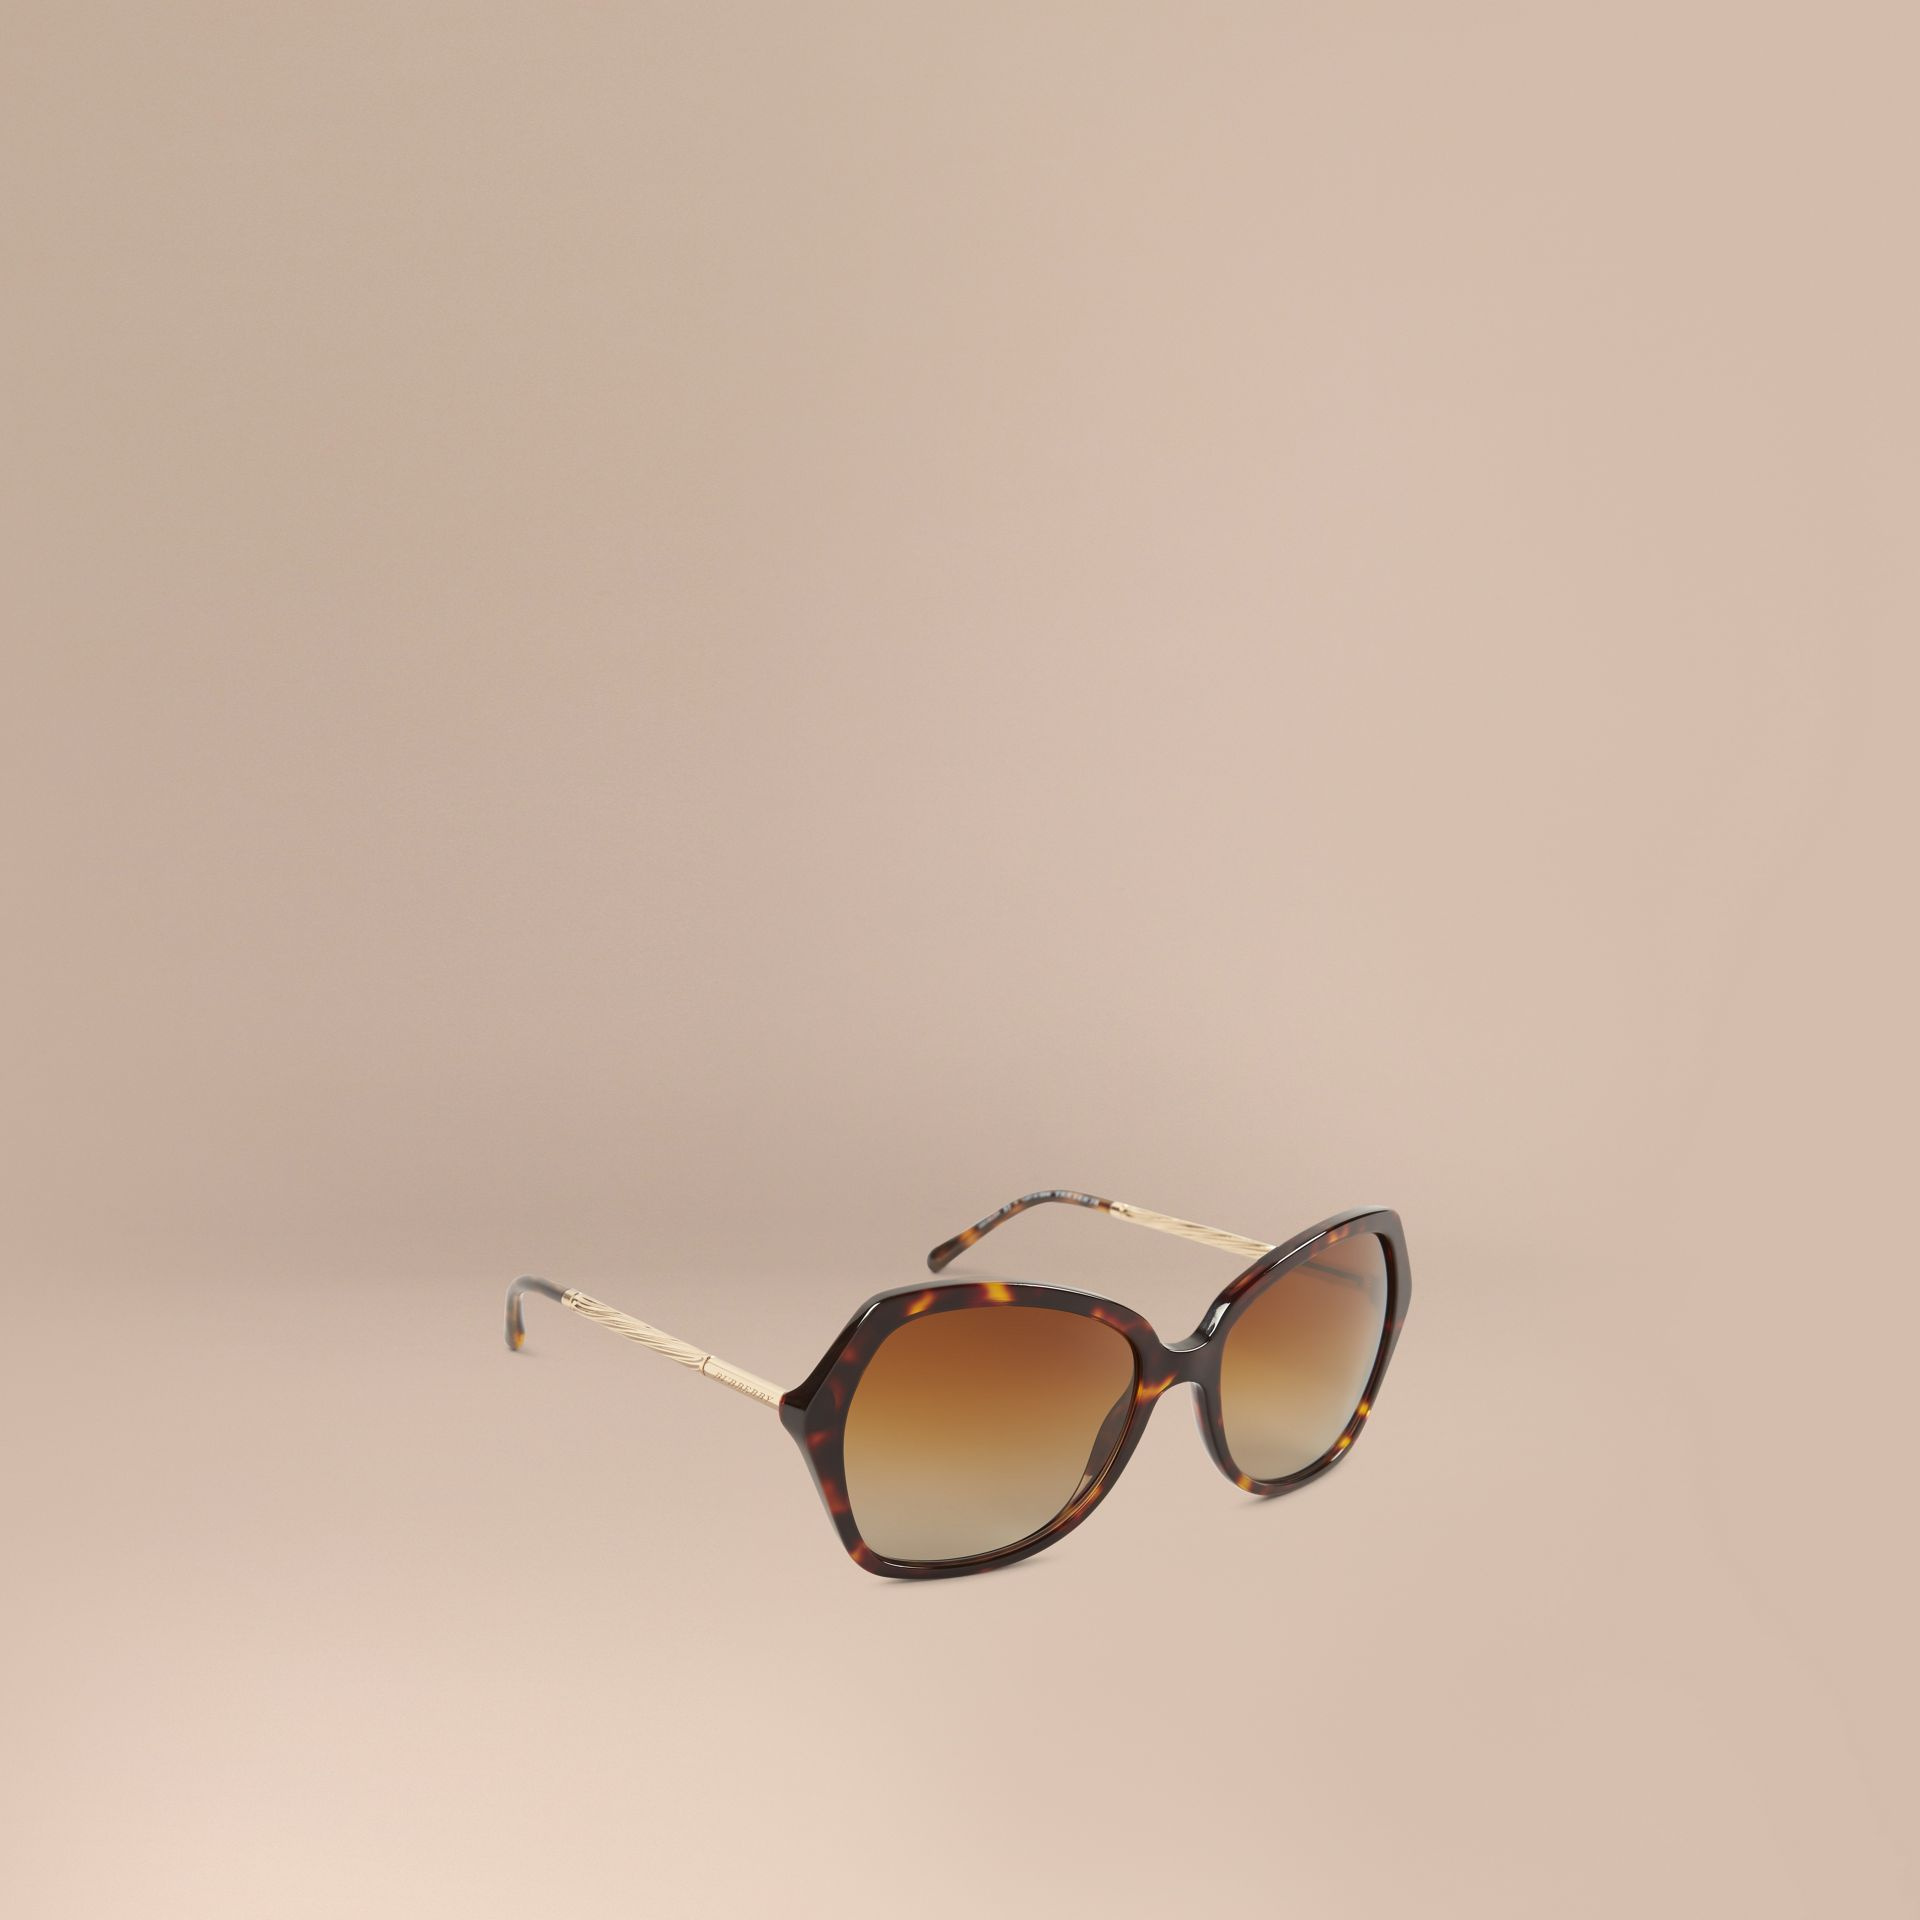 Tortoiseshell Gabardine Collection Oversize Square Frame Sunglasses Tortoiseshell - gallery image 1